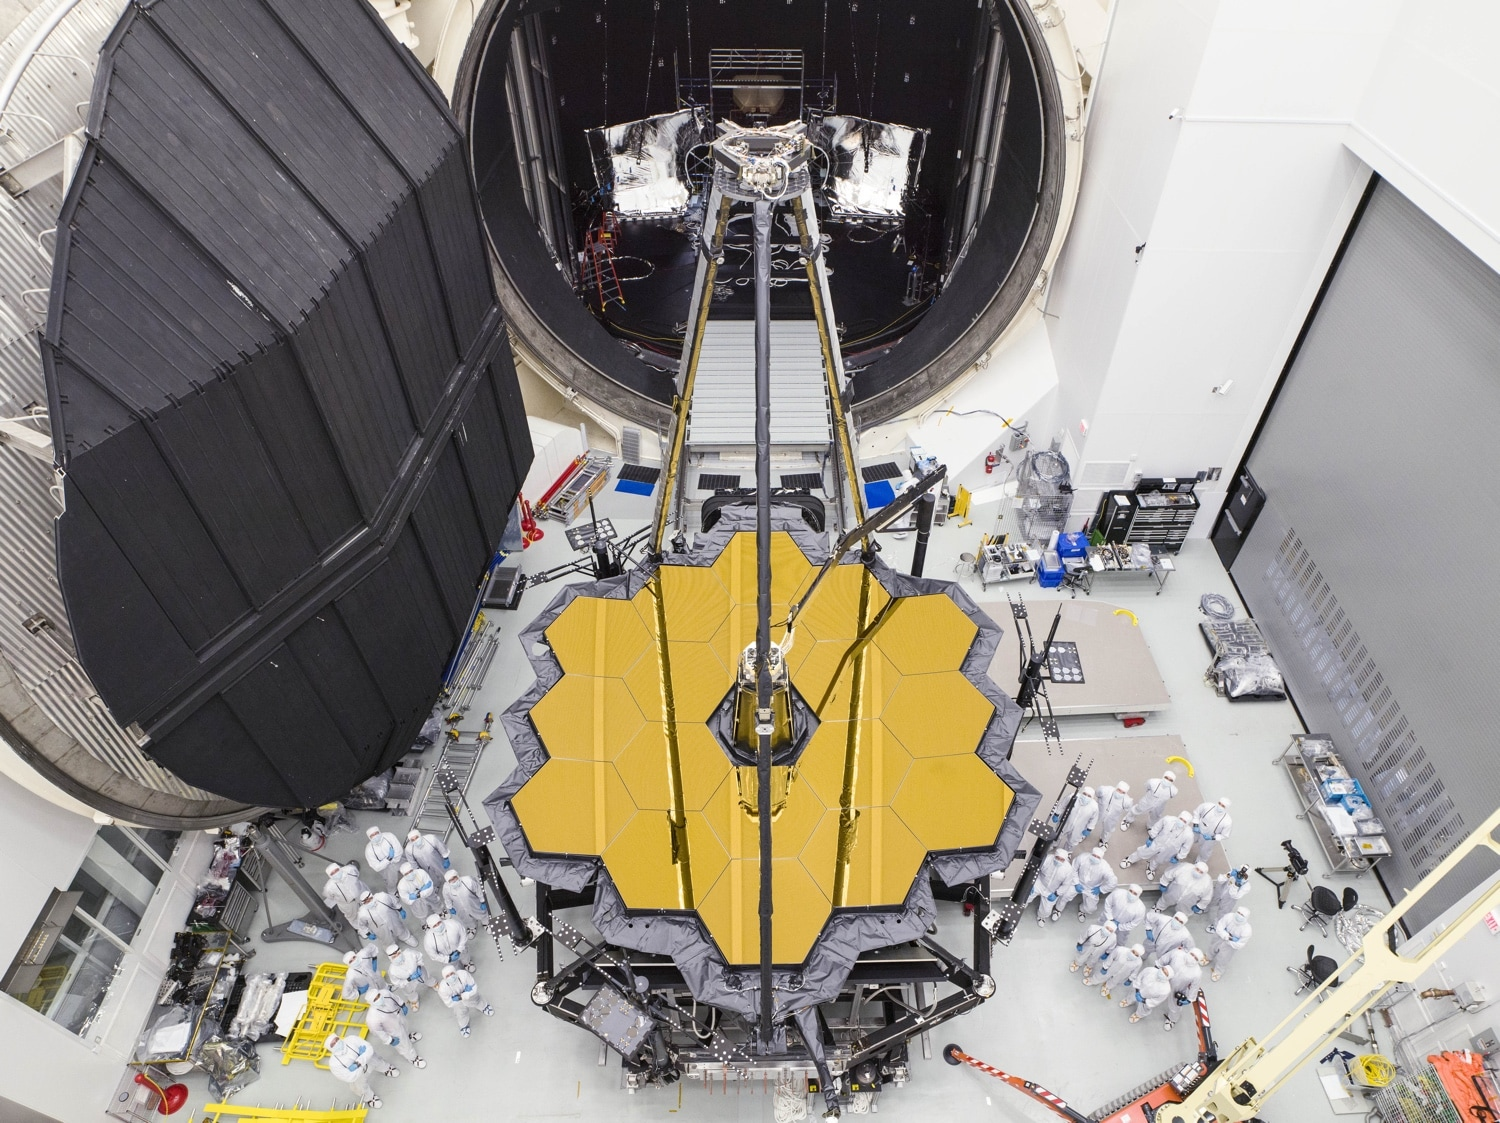 Engineers stand next to the massive heart of the James Webb Space Telescope after removing it from NASA's Chamber A testing facility in Houston, Texas.